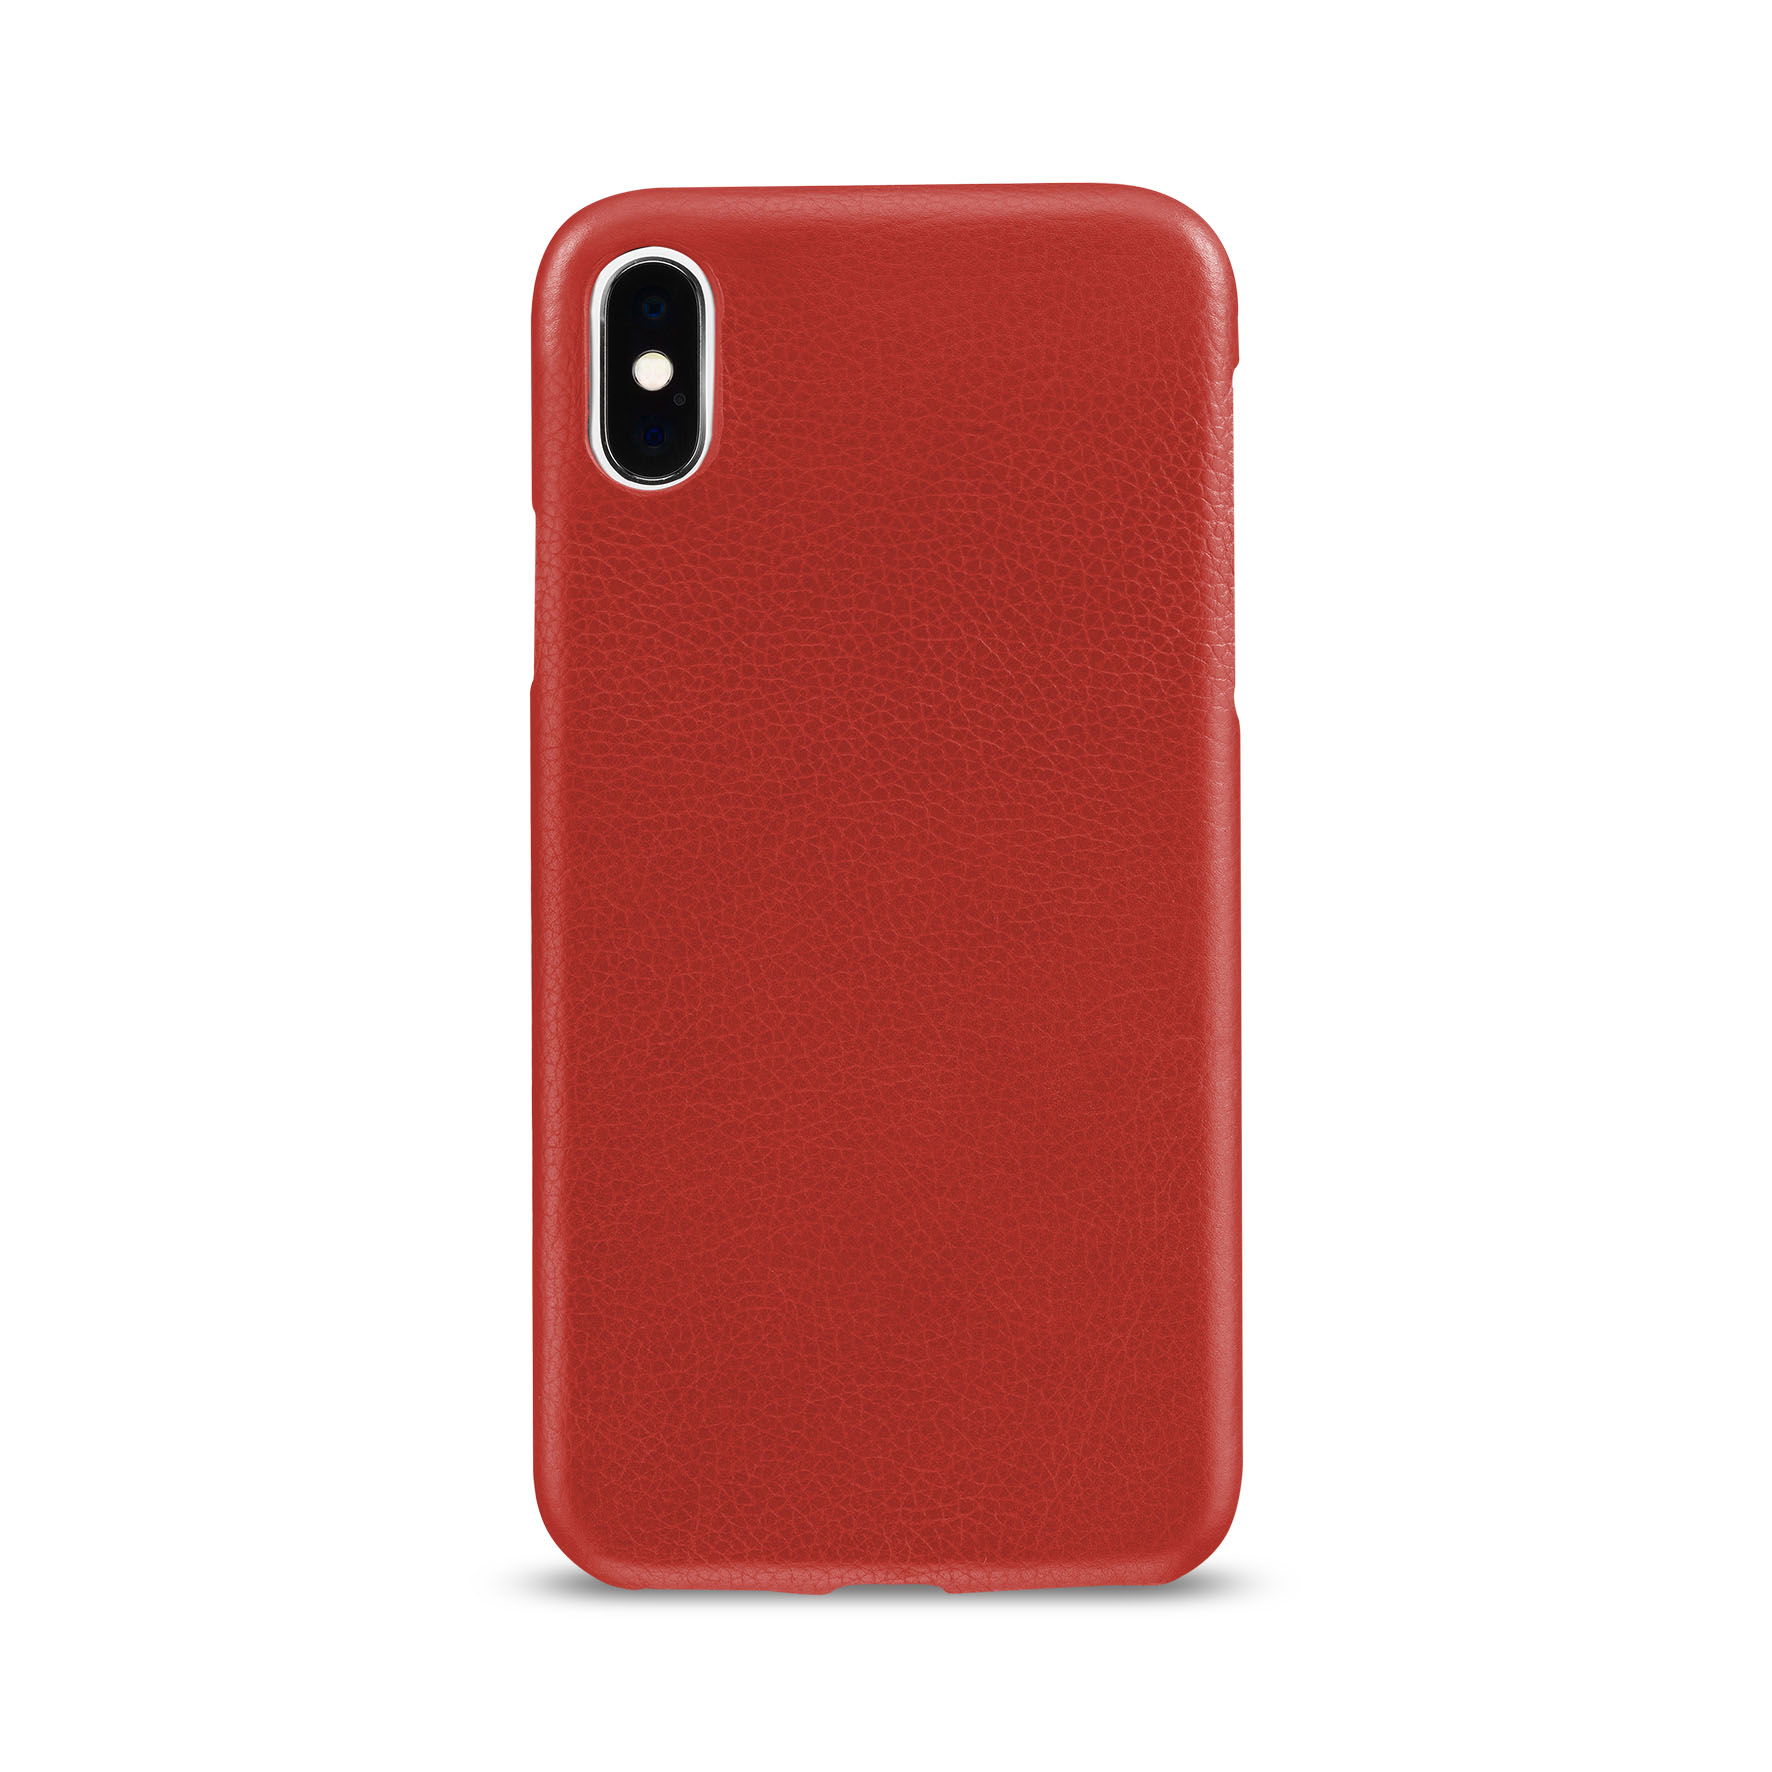 Artwizz Leather Clip edle Schutz-Hülle Echt-Leder iPhone X 10 Cover rot B-Ware – Bild 3